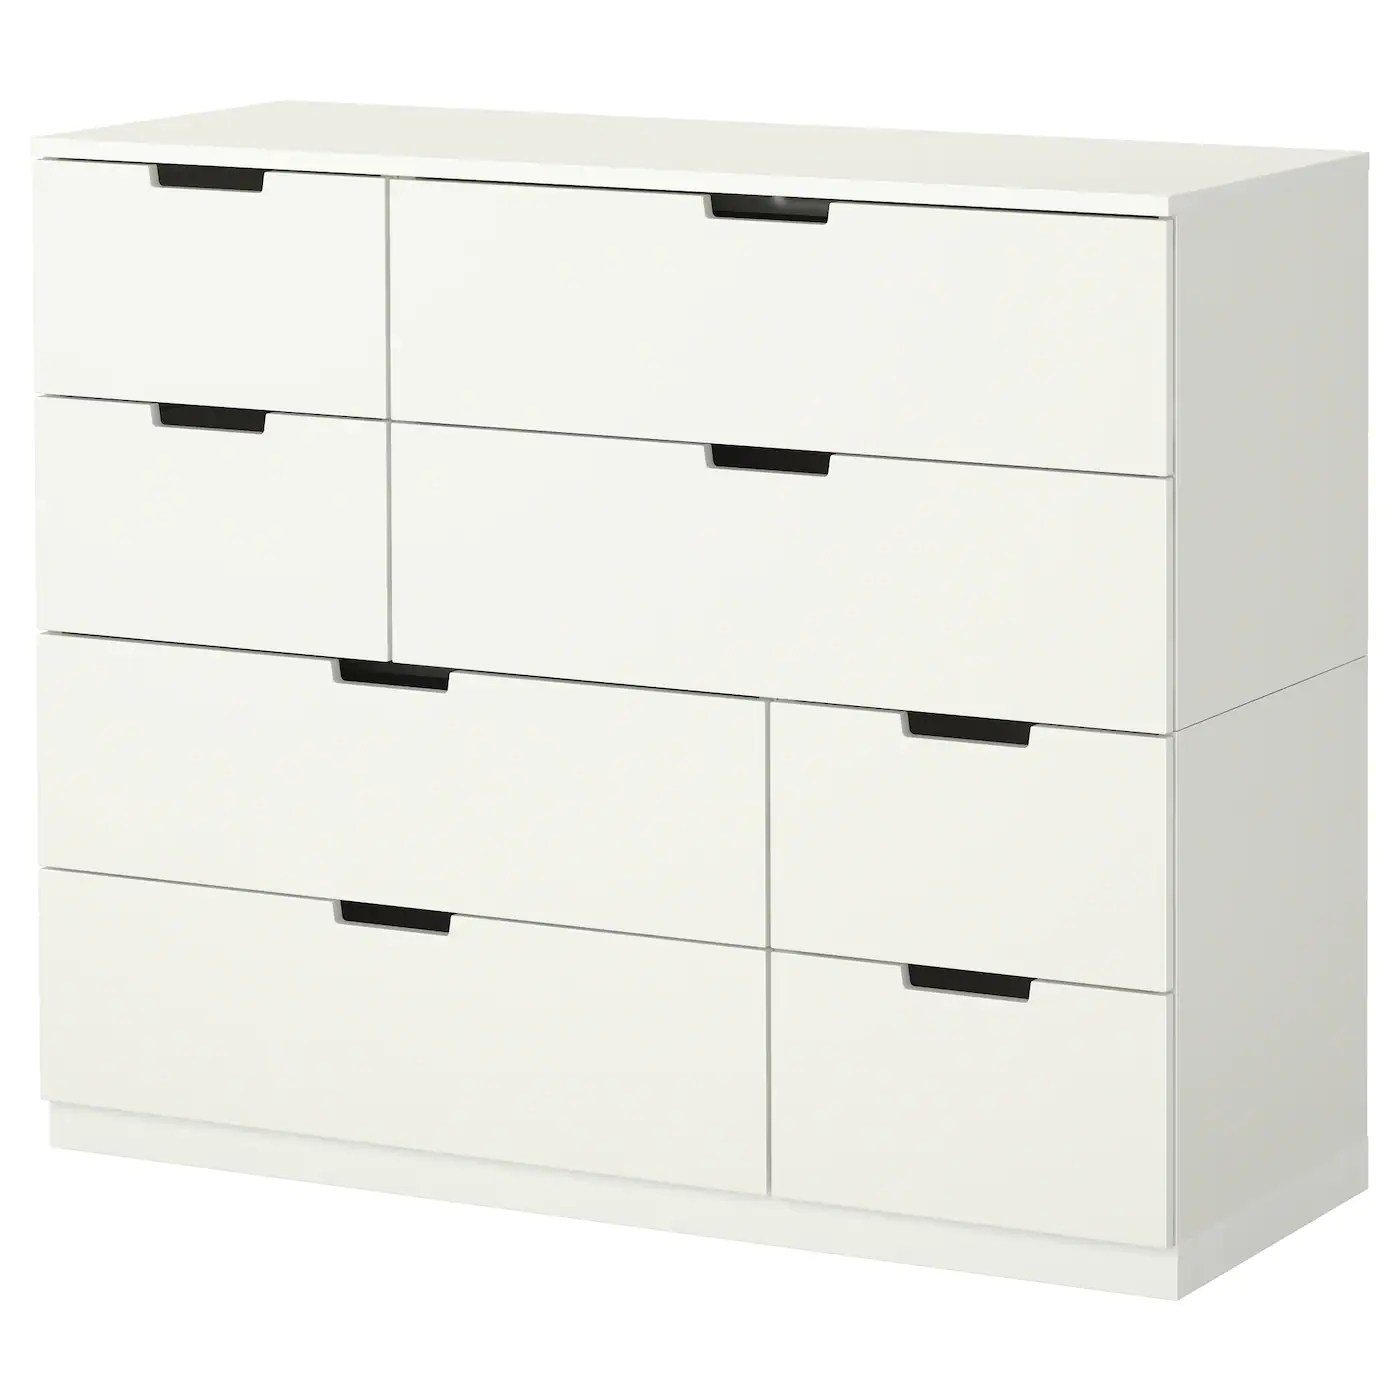 Apotheker Unterschrank 30 Cm Nordli Chest Of 8 Drawers White 120x97 Cm Ikea